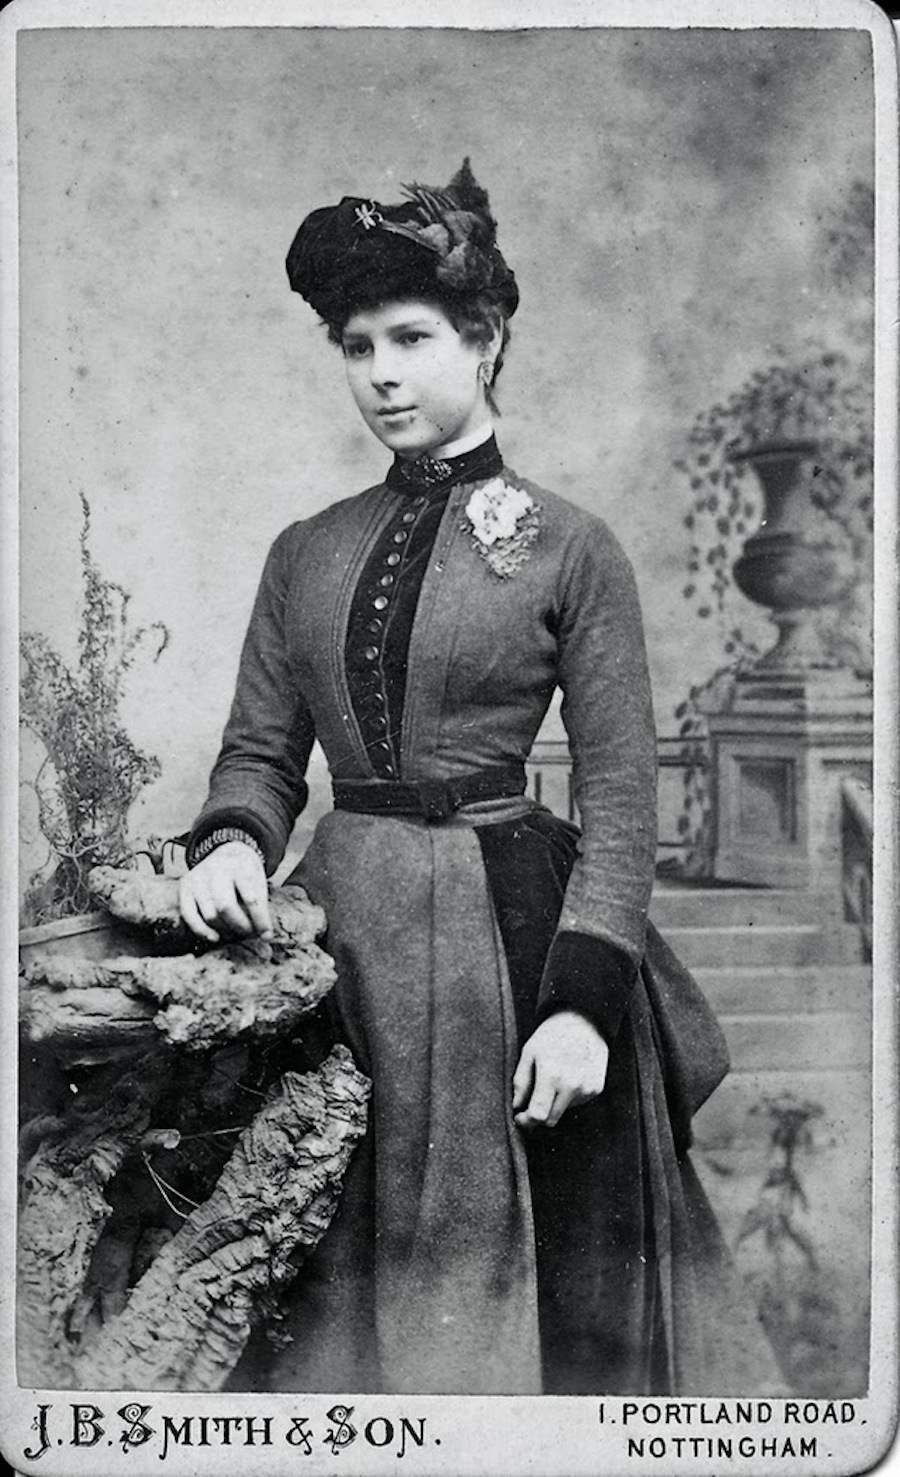 Photographic portraits of Victorian women - FlashbakVictorian Woman Portrait